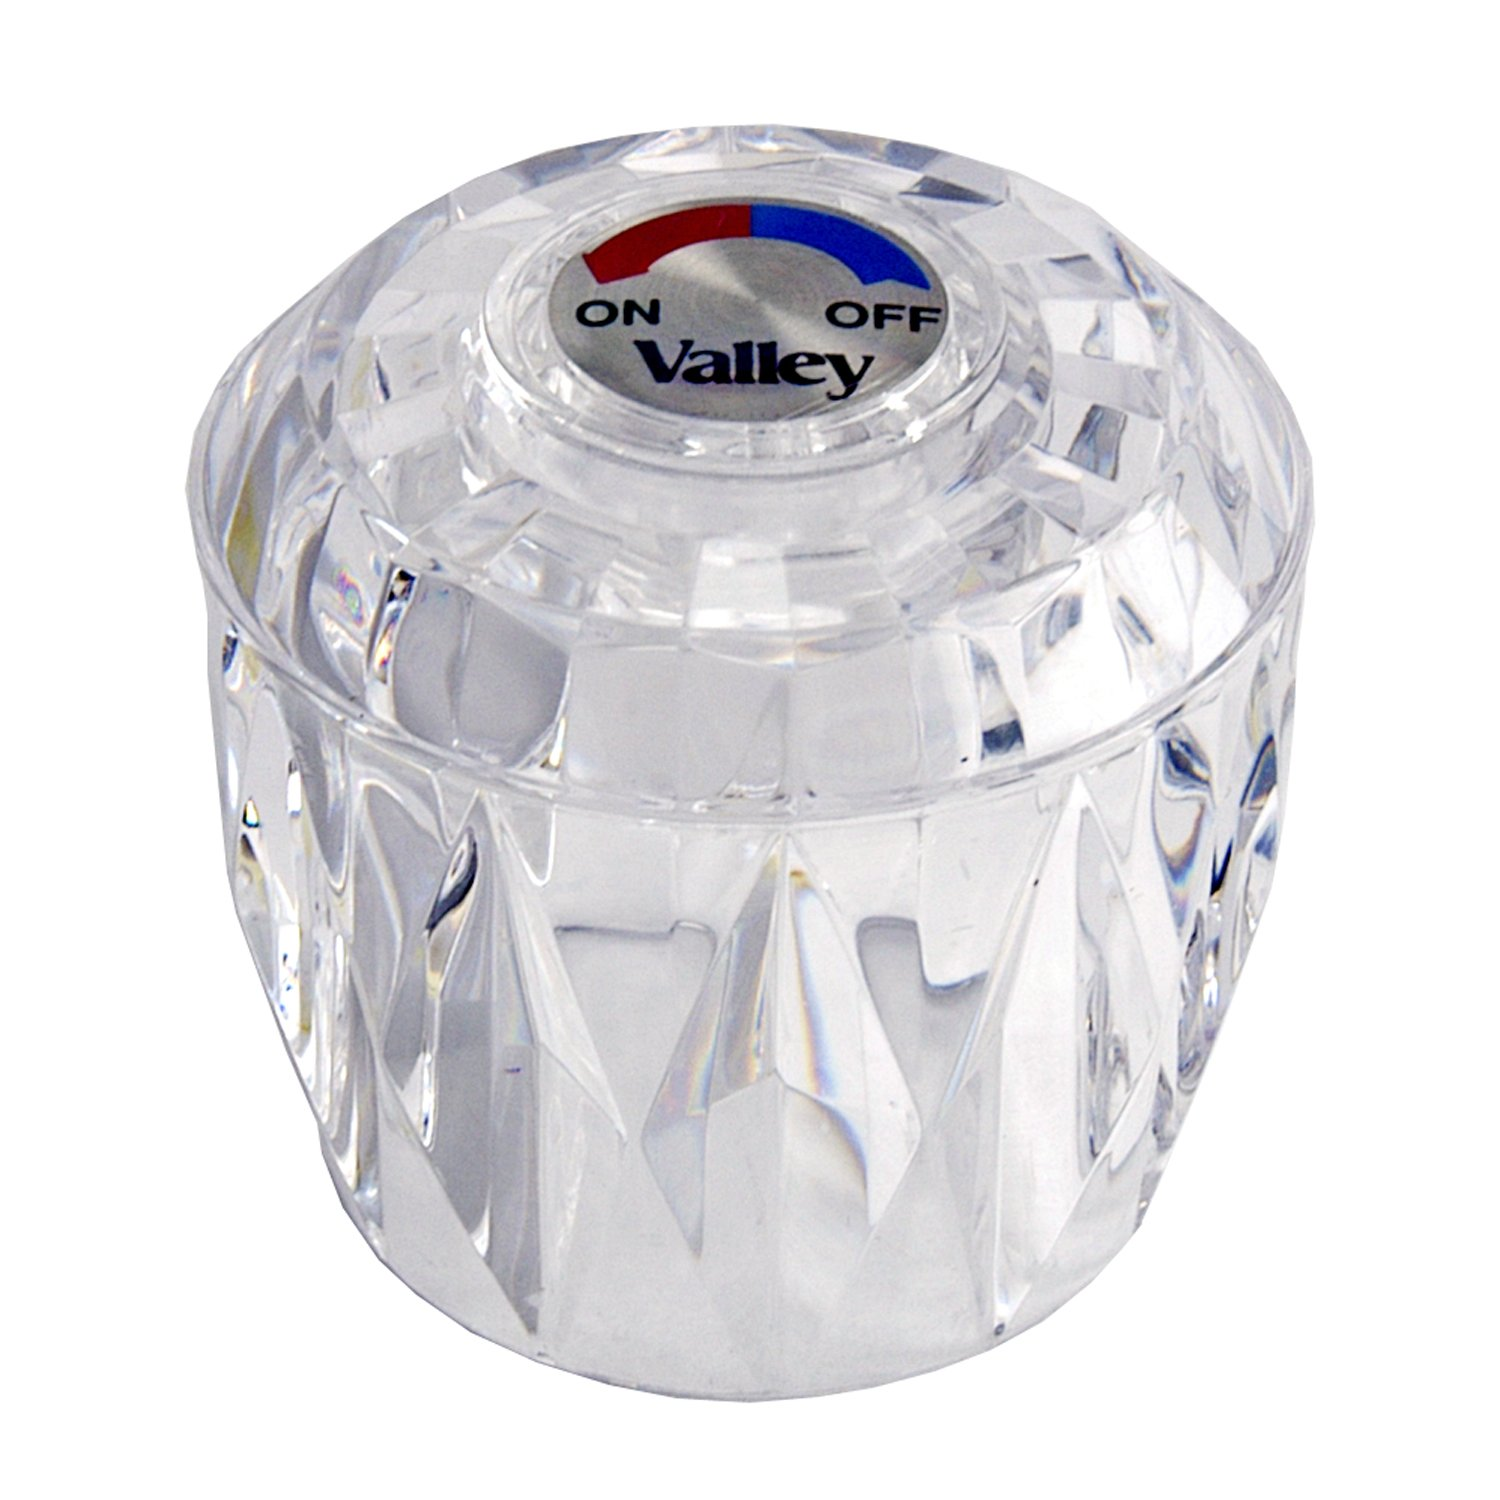 Danco 16484 Diverter Handle for Valley, Clear Acrylic